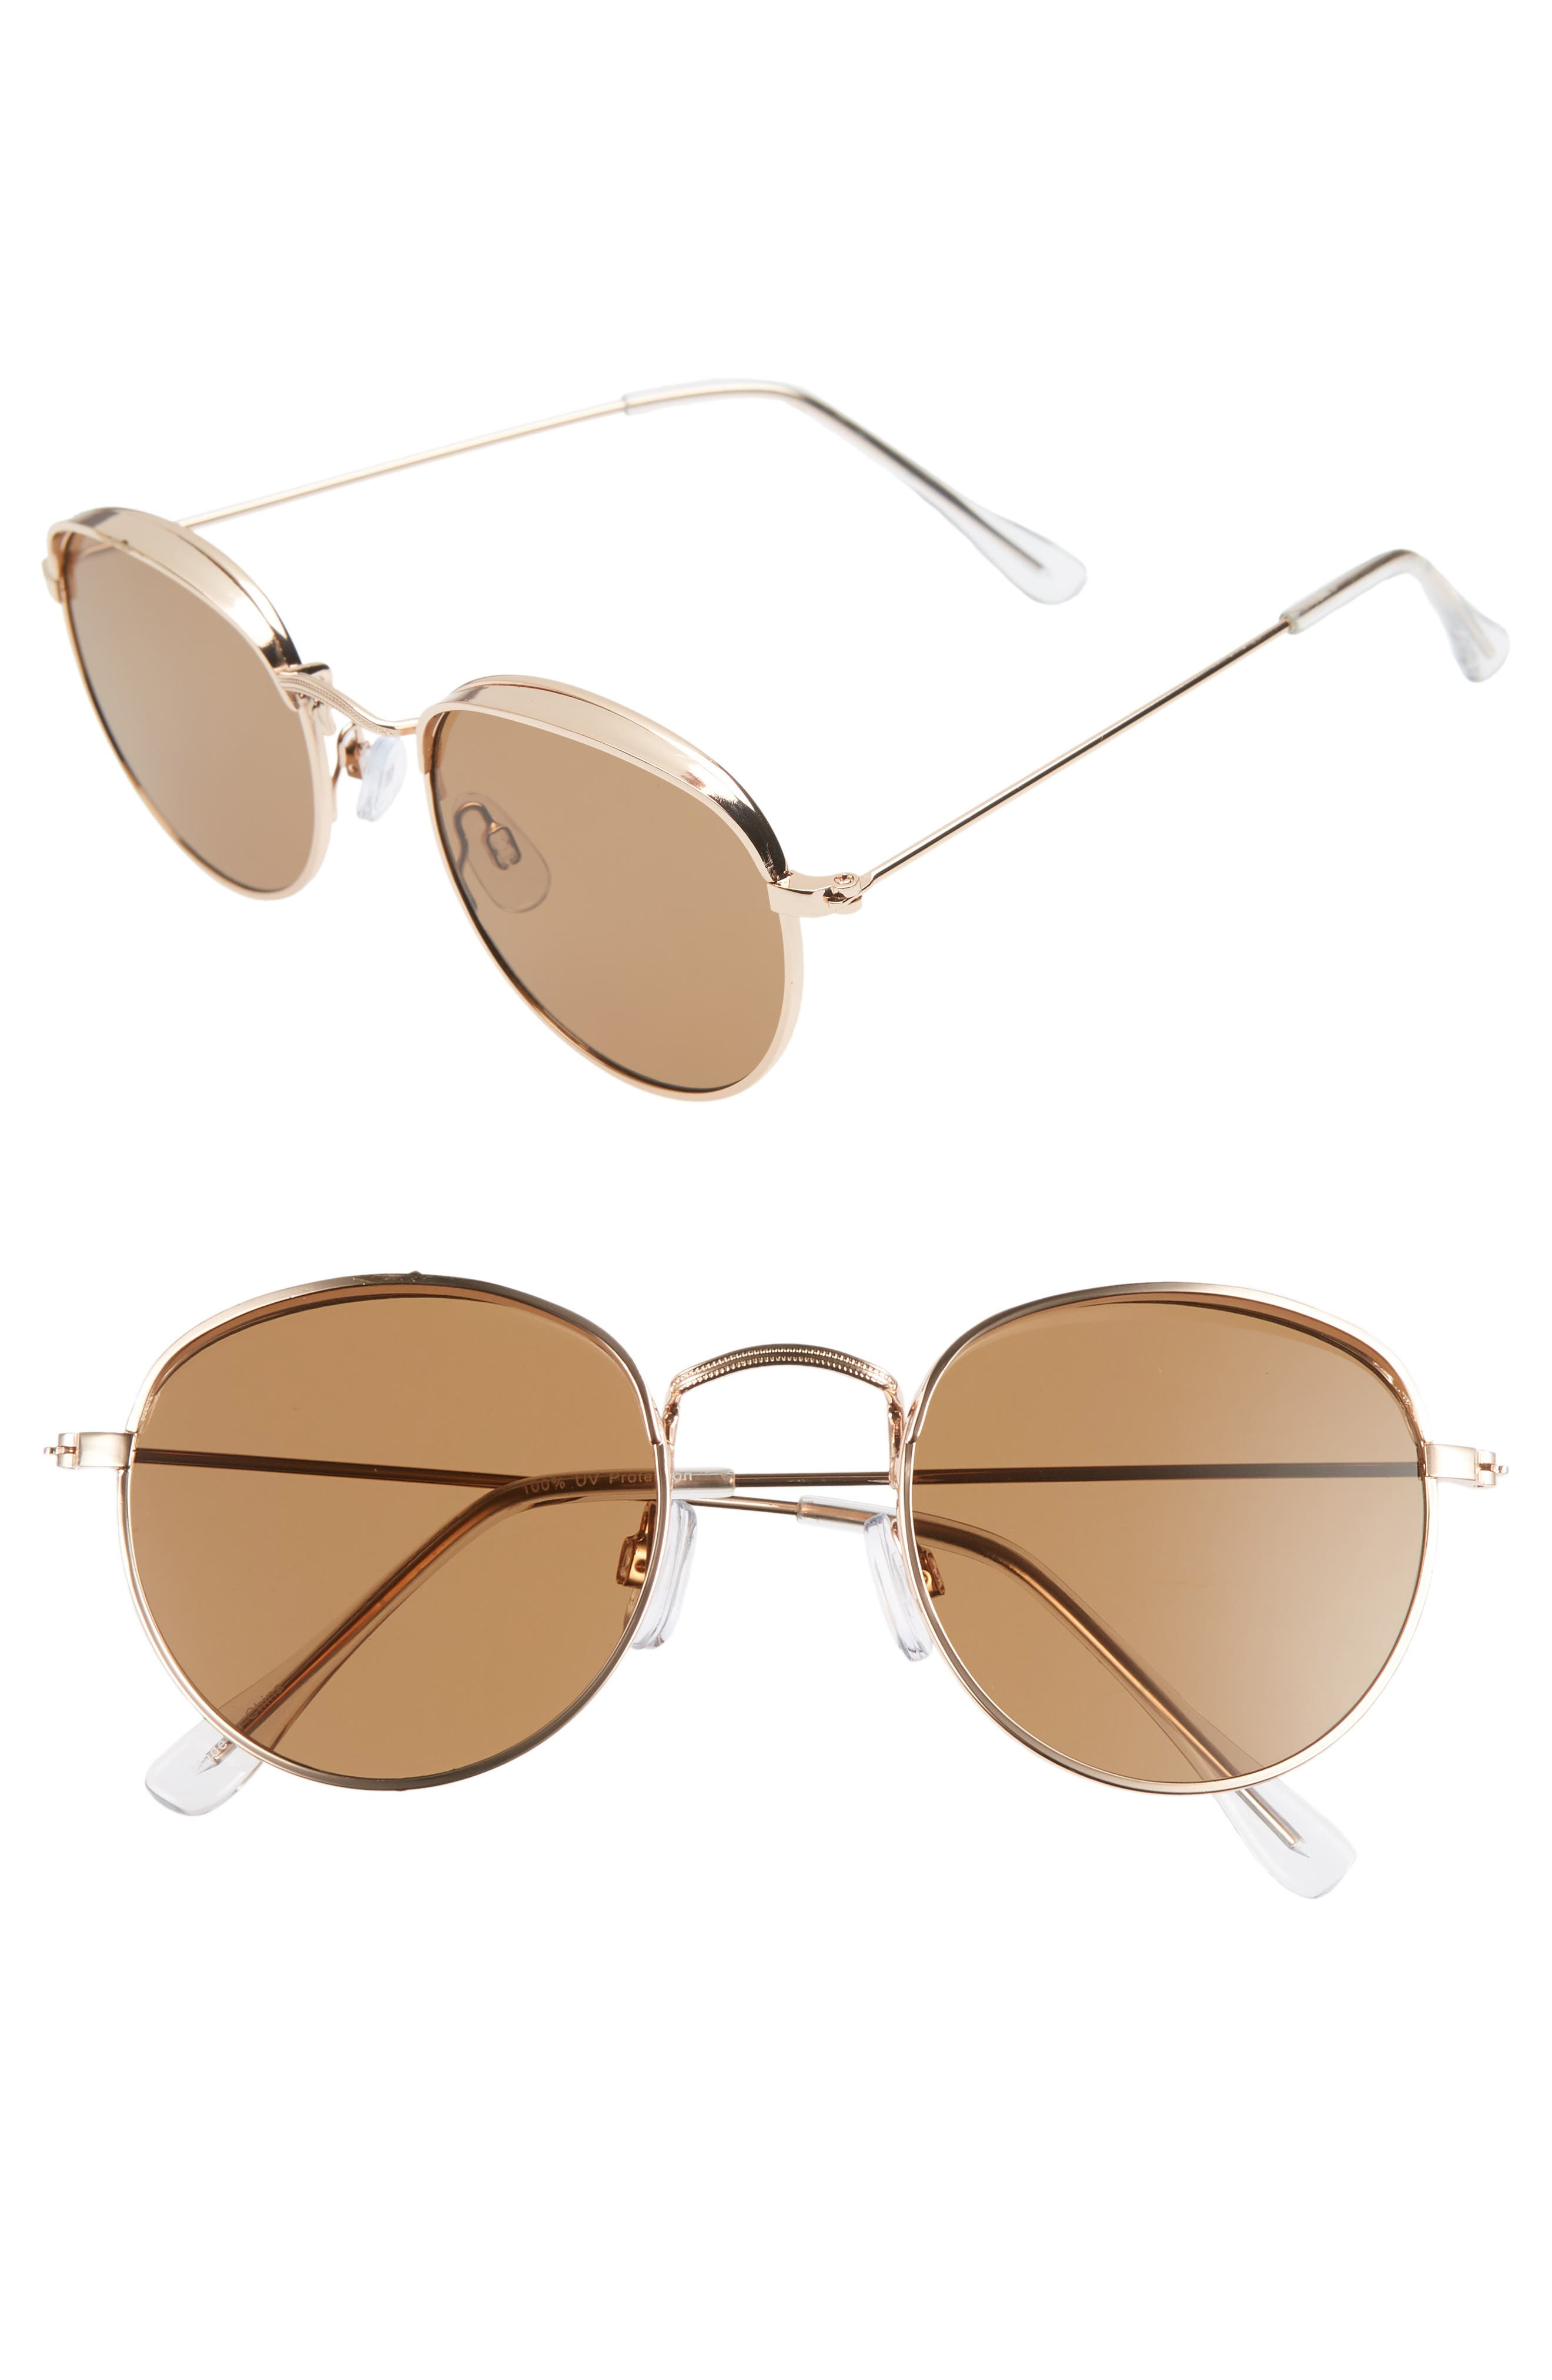 50mm Round Sunglasses,                         Main,                         color, GOLD/ BROWN